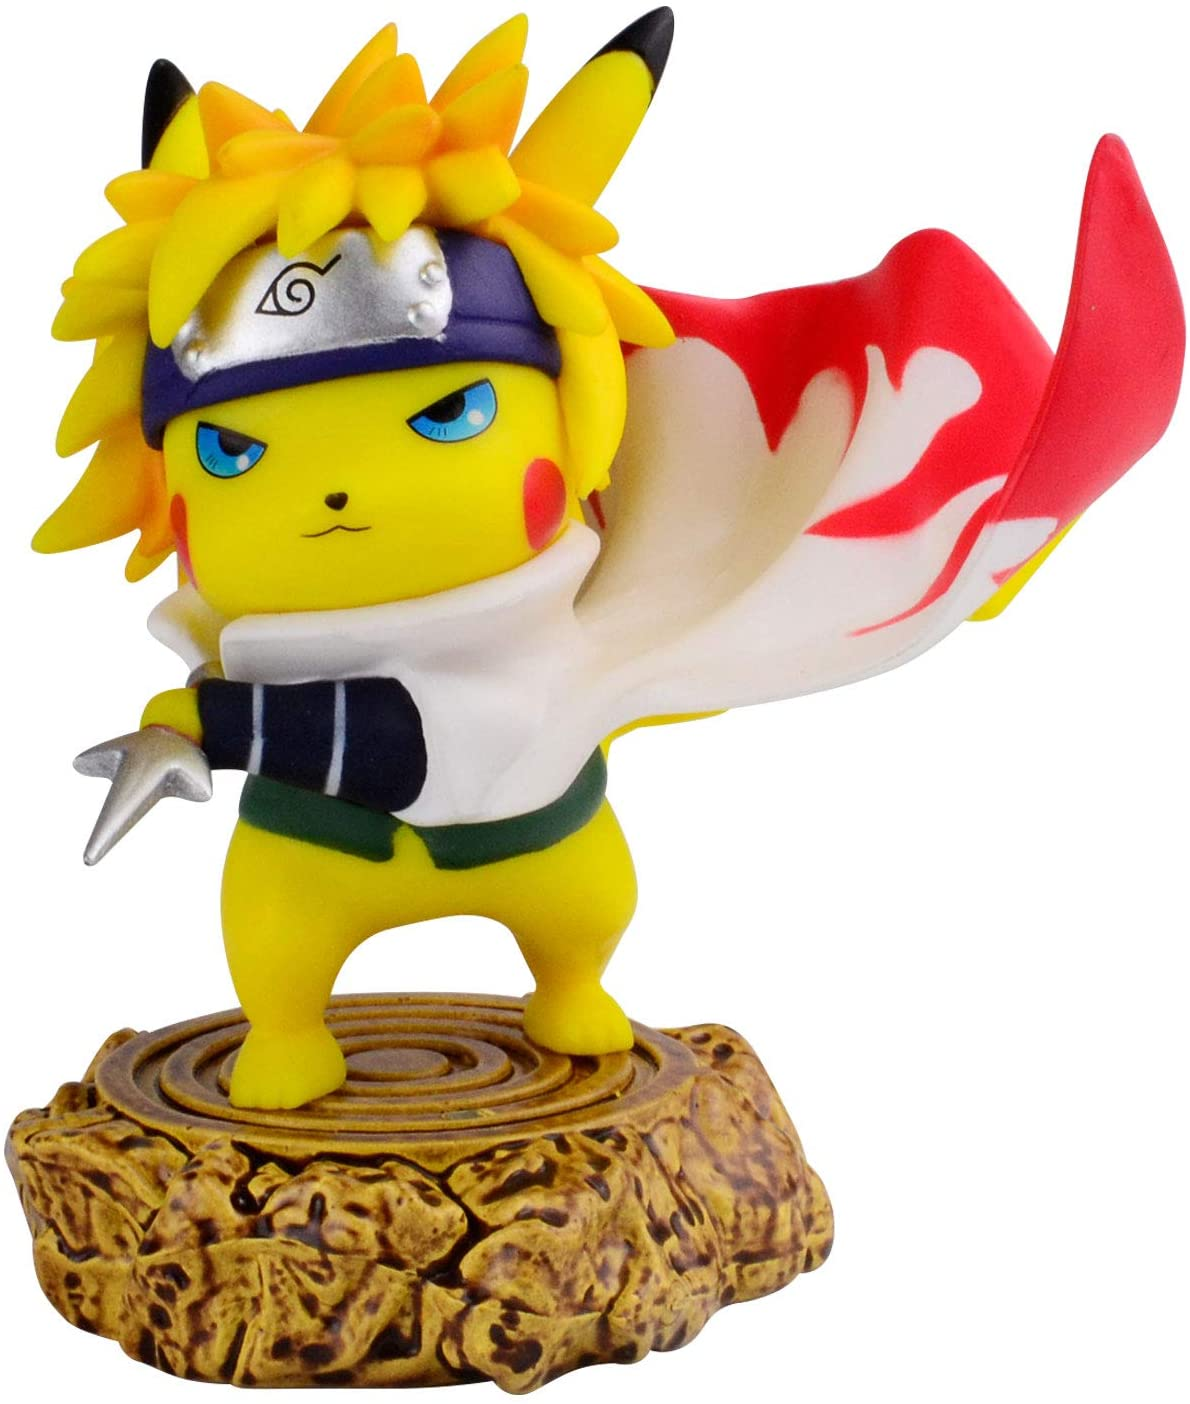 11cm anime pokemon gk pikachu squirtle model statue pvc action figure collectible model toys for children gifts 3.94 Inch Pokemon Anime Pikachu Cosplay Namikaze Minato Action Figure Anime Statue Collection PVC Model Toys Gifts  Kawaii Decor